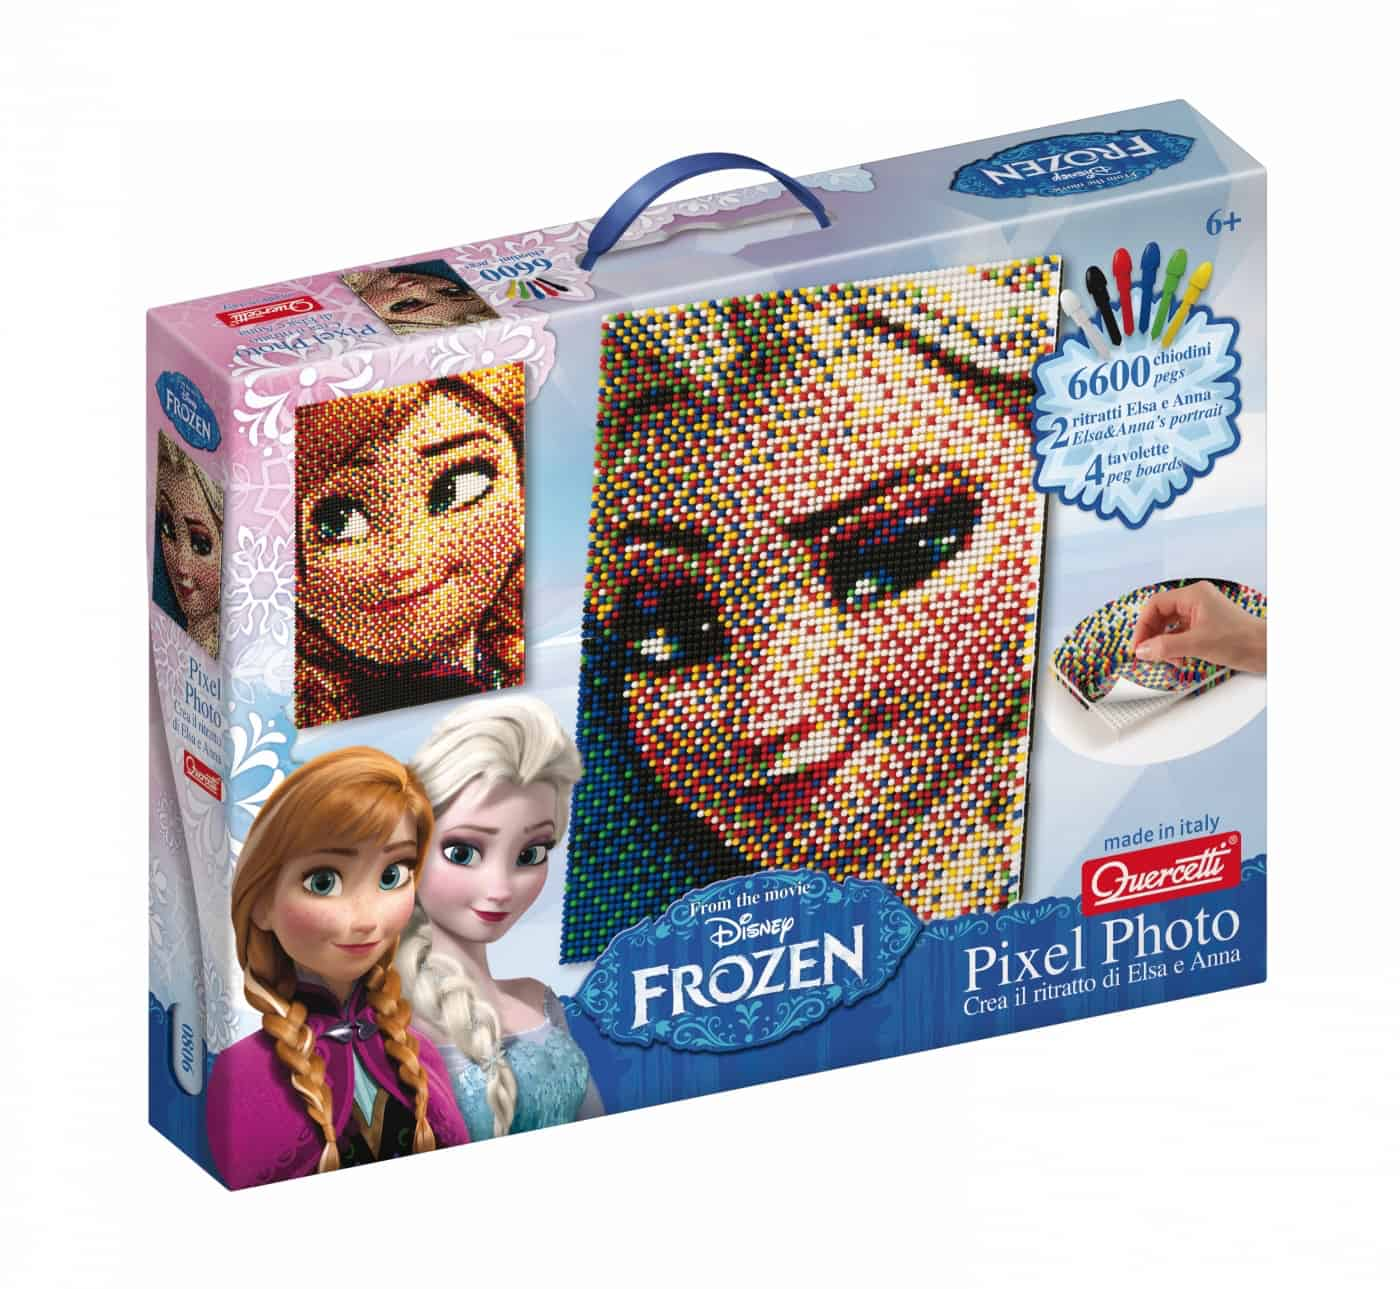 Arrivano per Natale Pixel Photo Frozen e Pixel Photo Princess firmati Quercetti!